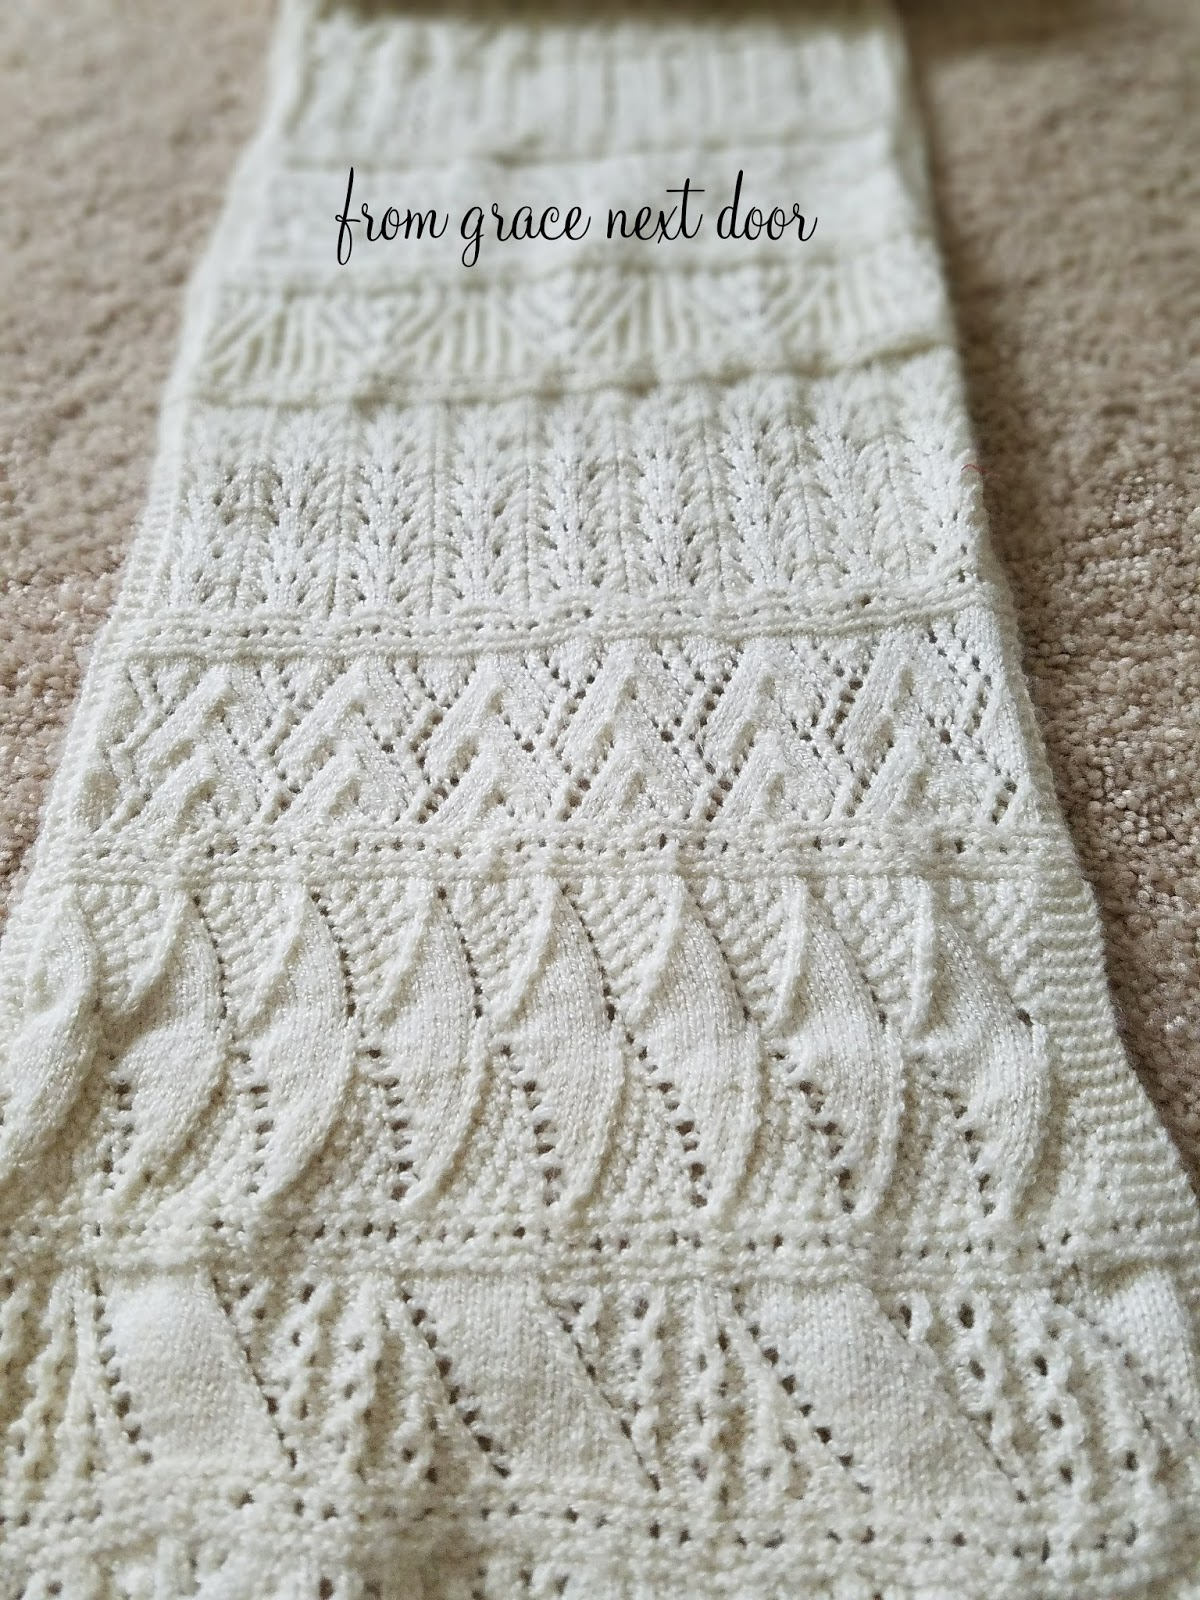 from grace next door: Advent Scarf - Last Finished Project of 2017